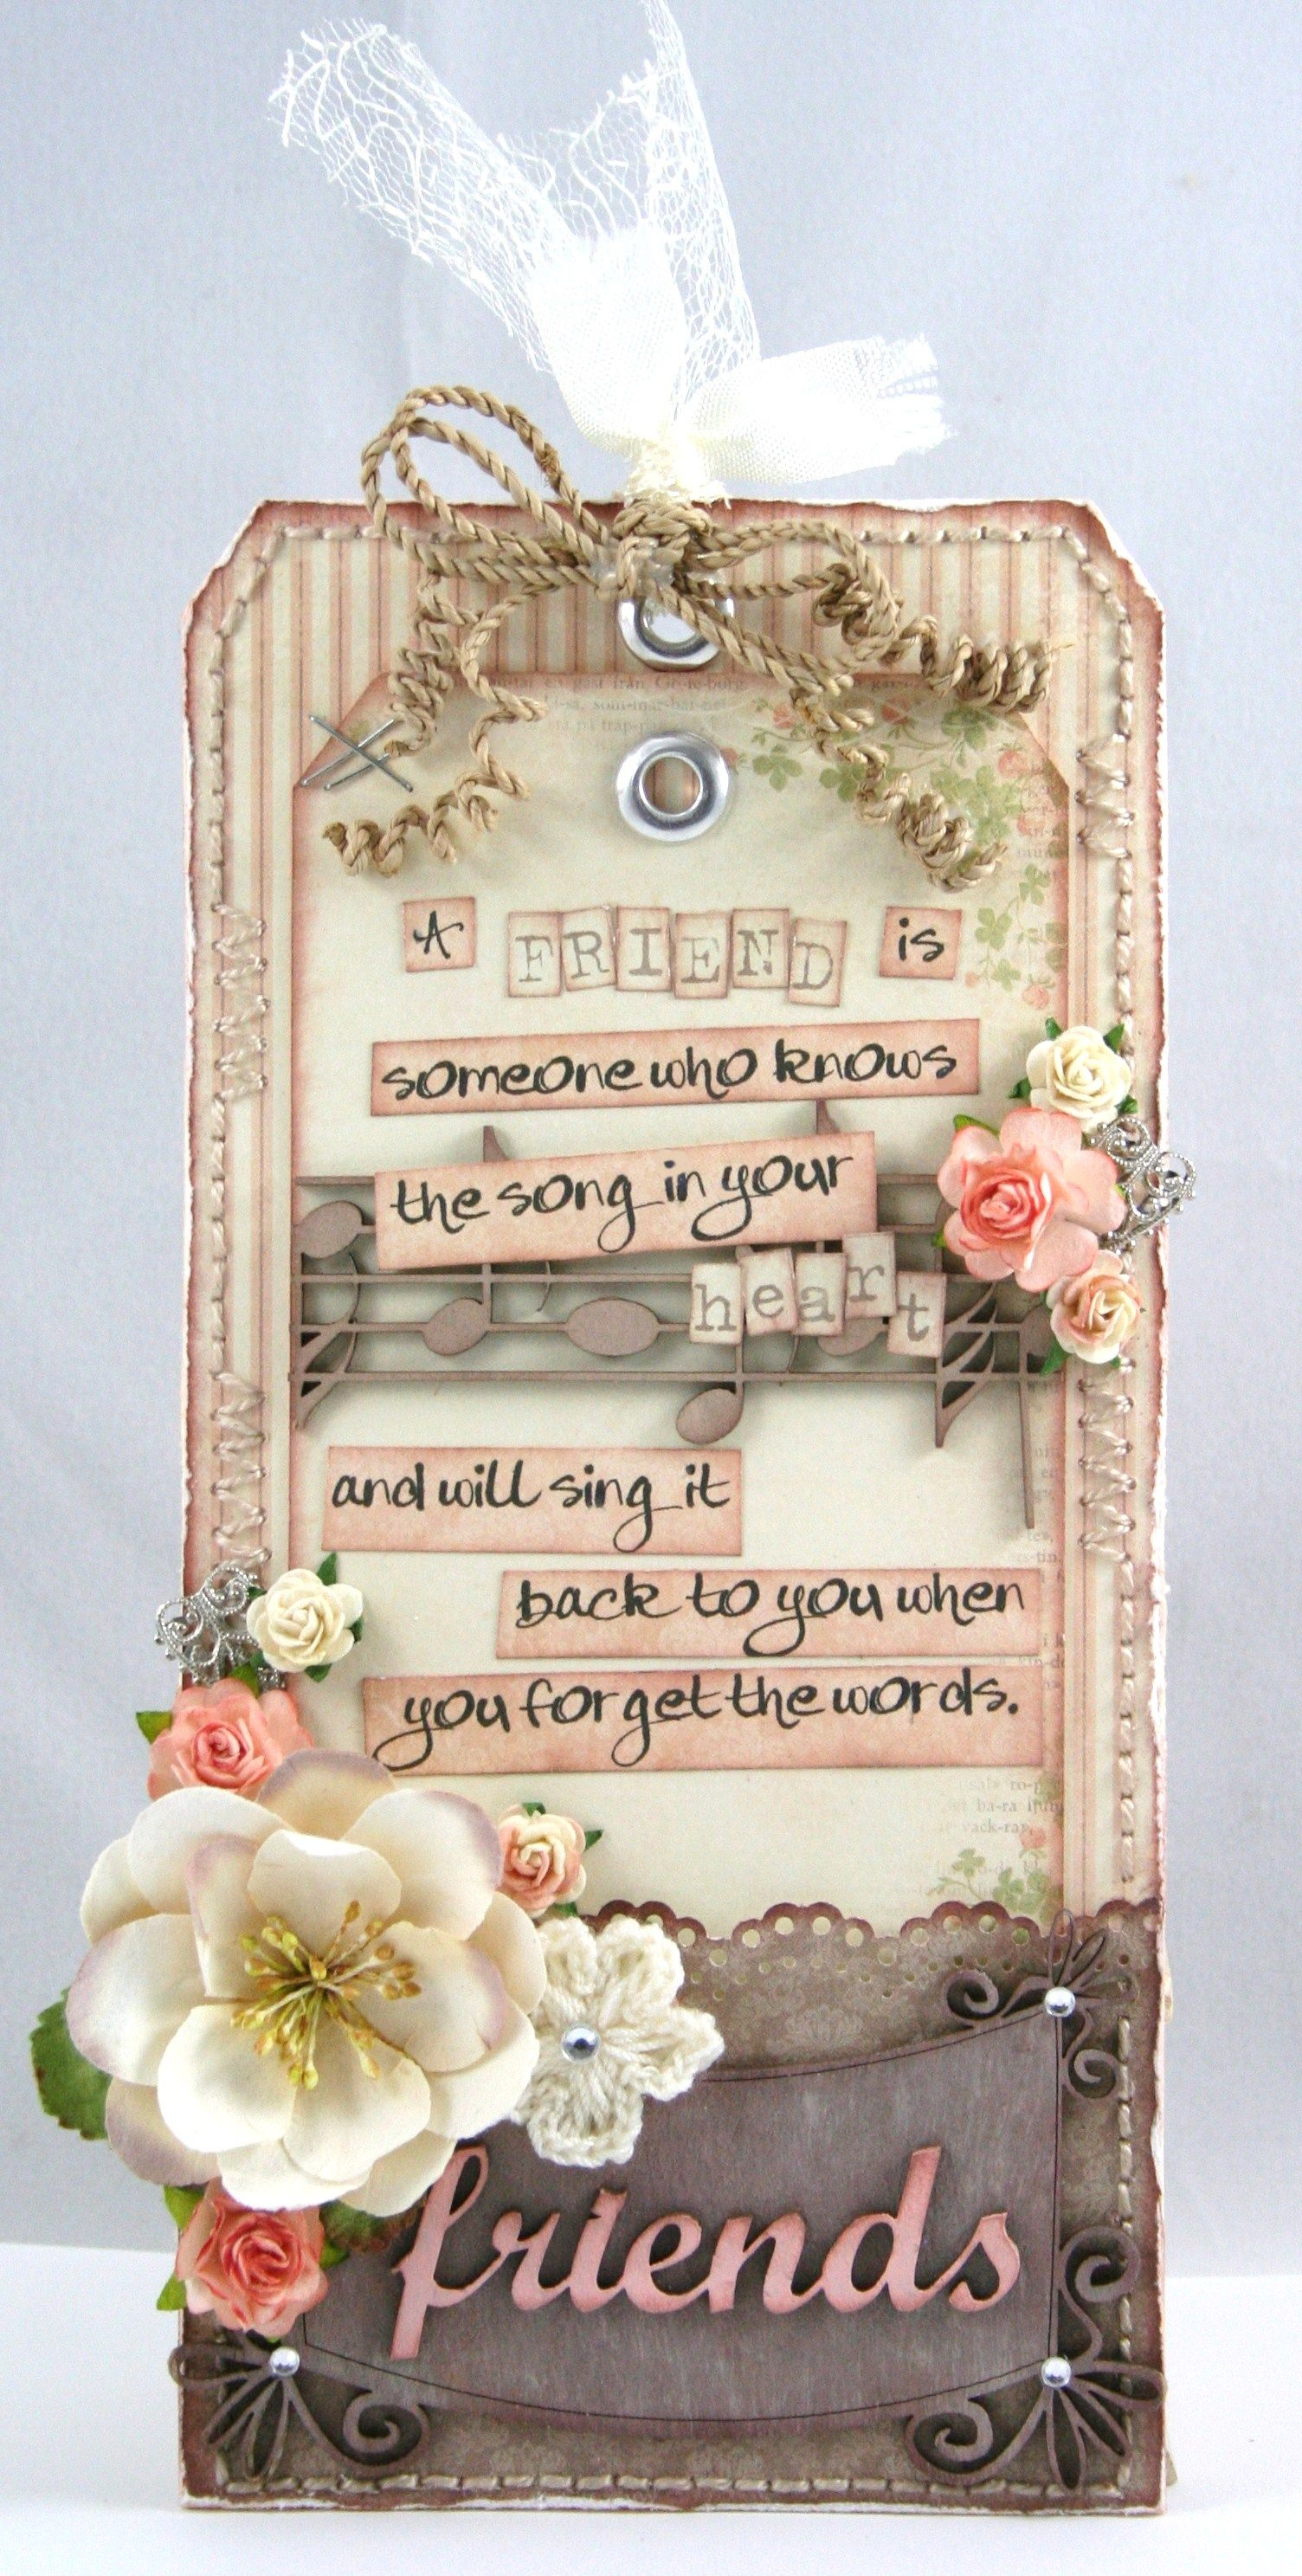 Friendsu tag this site has incredibly beautiful items cards